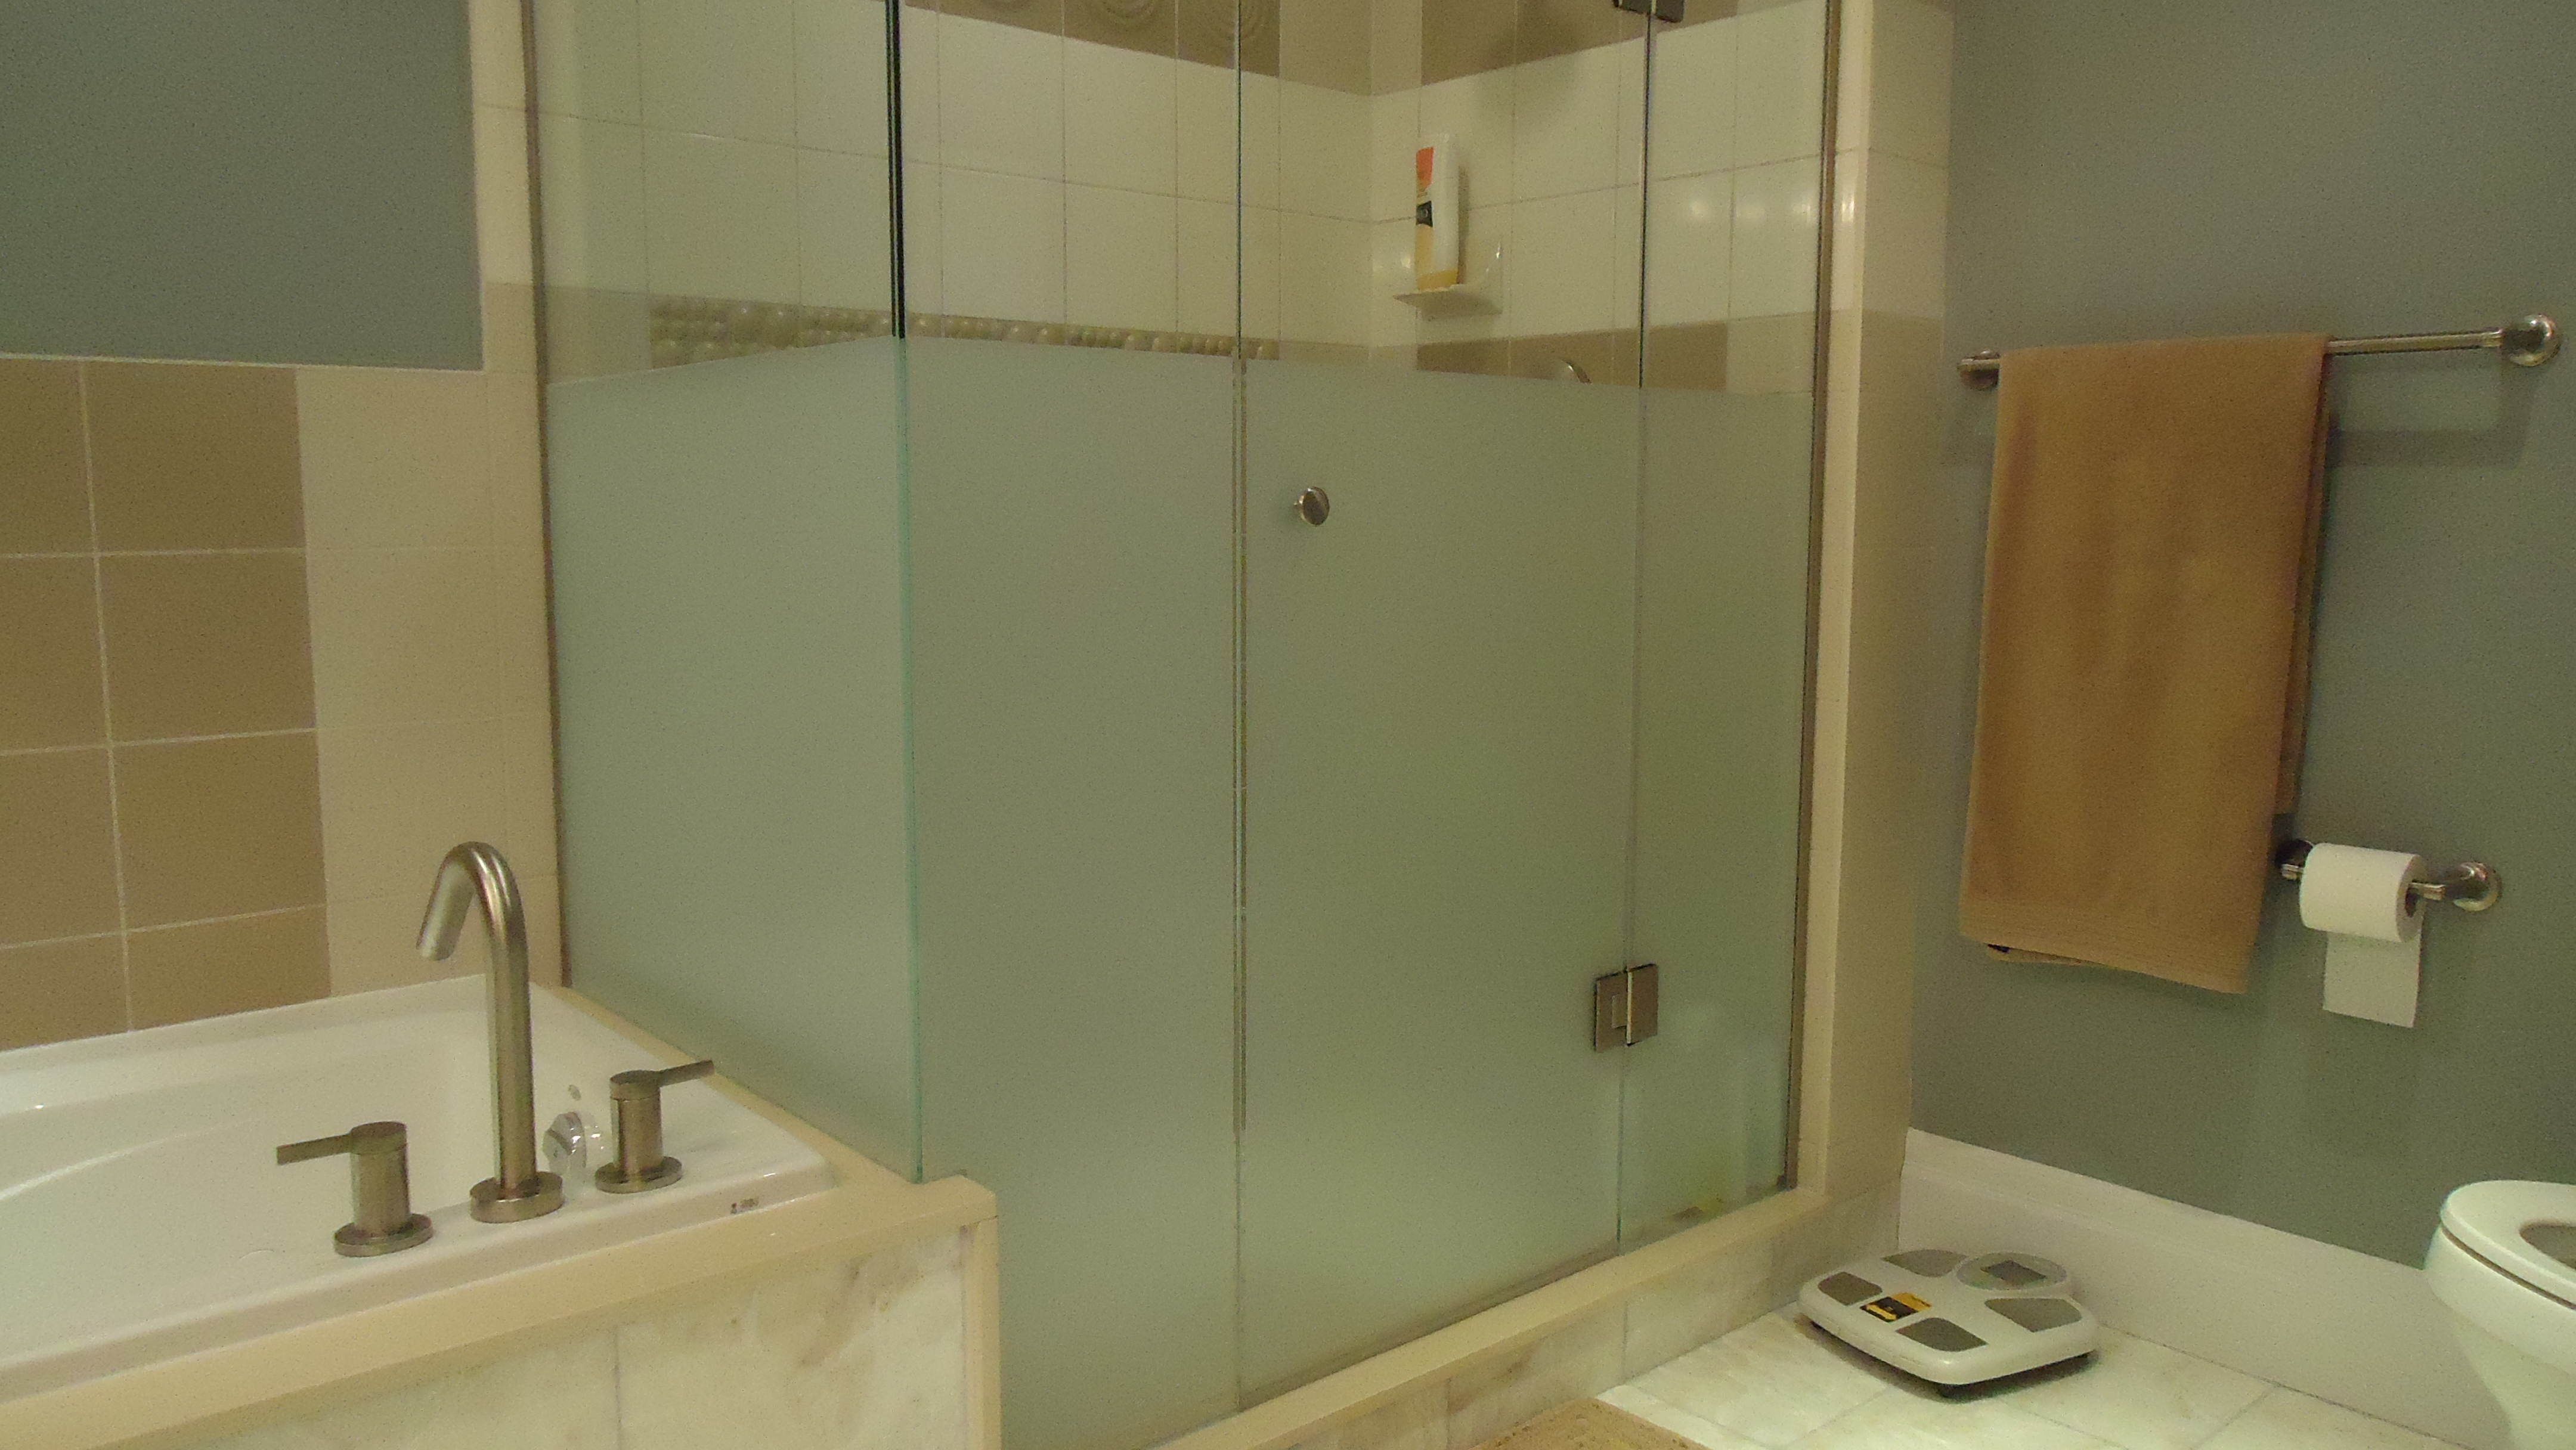 Adding privacy to a glass shower small space style for Glass shower doors for baths